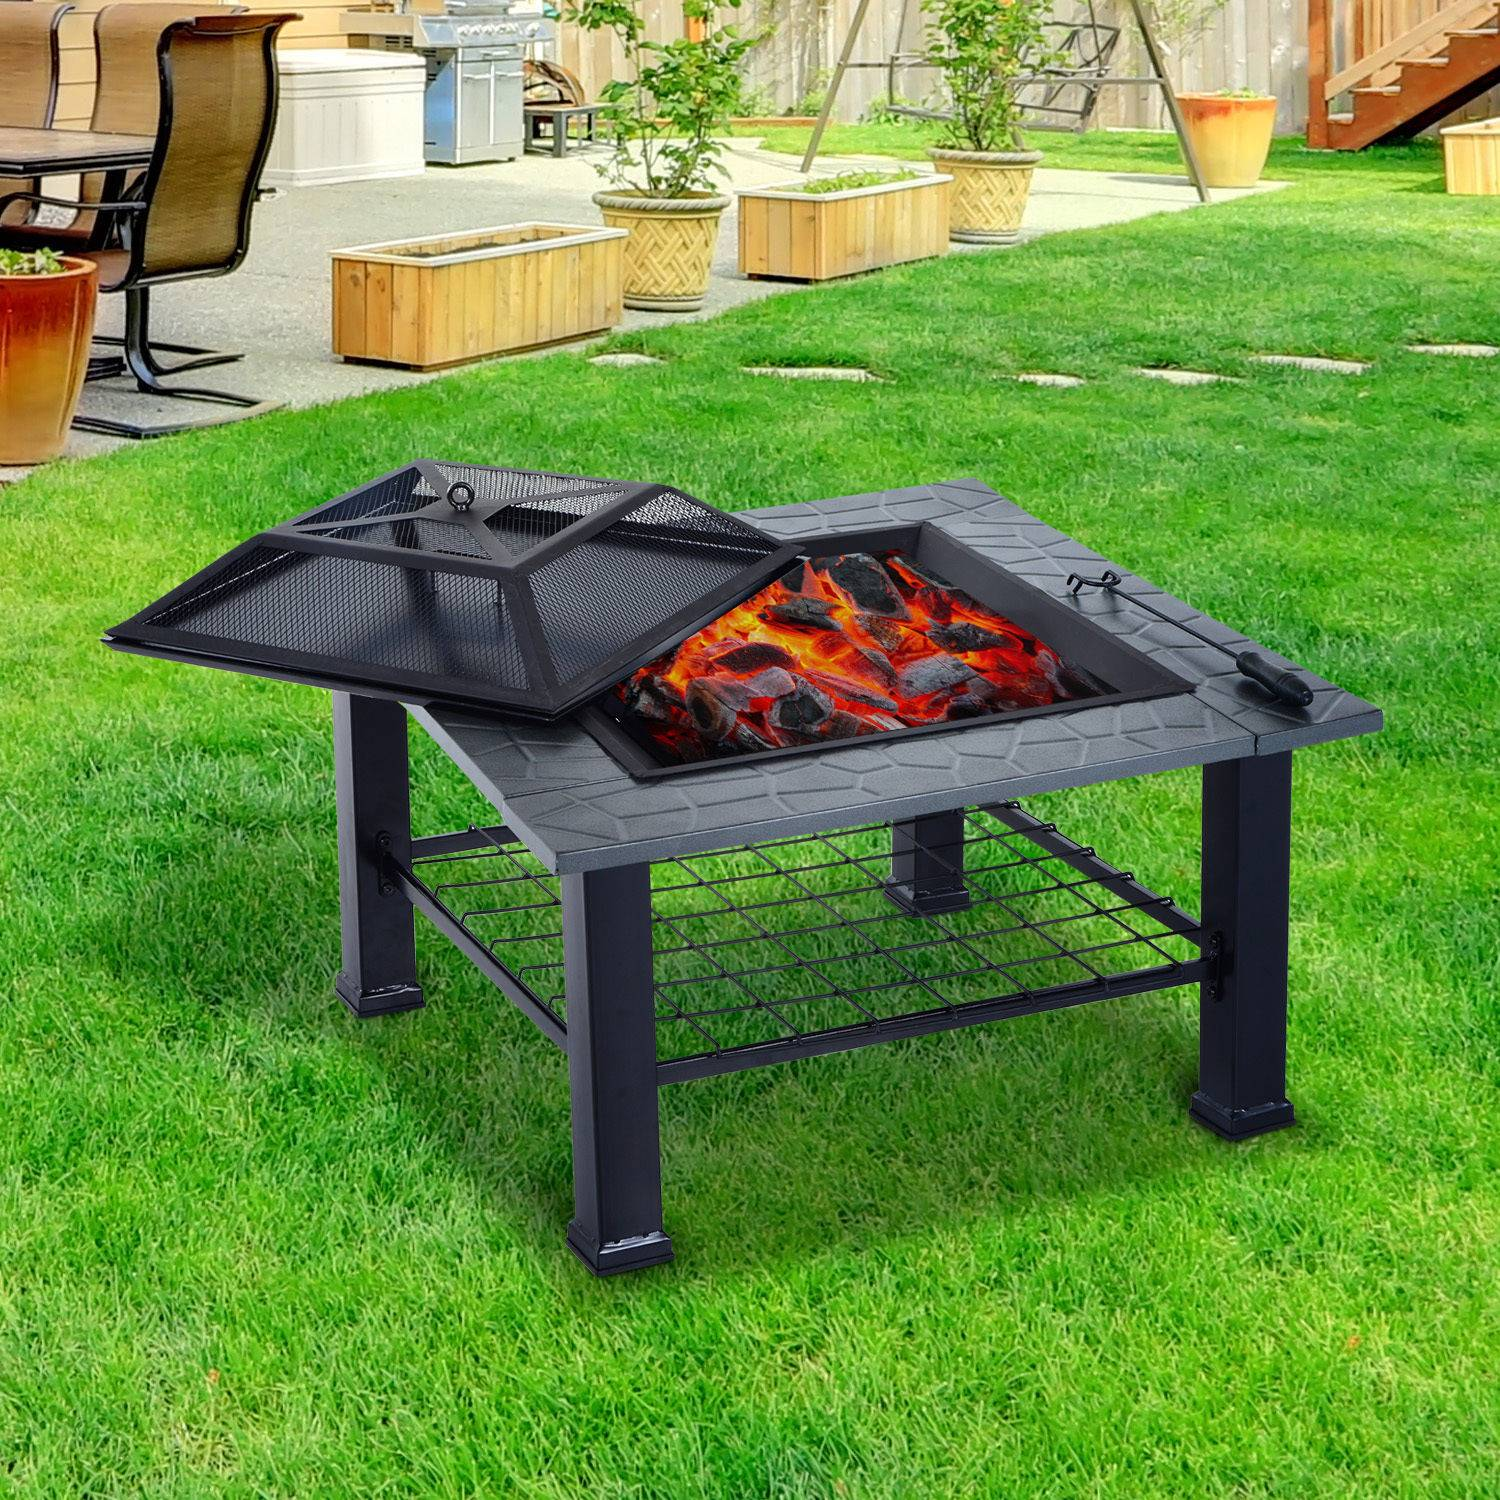 Outsunny Patio Fire Pit 81cm Fireplace BBQ Grill Stove Heater Brazier